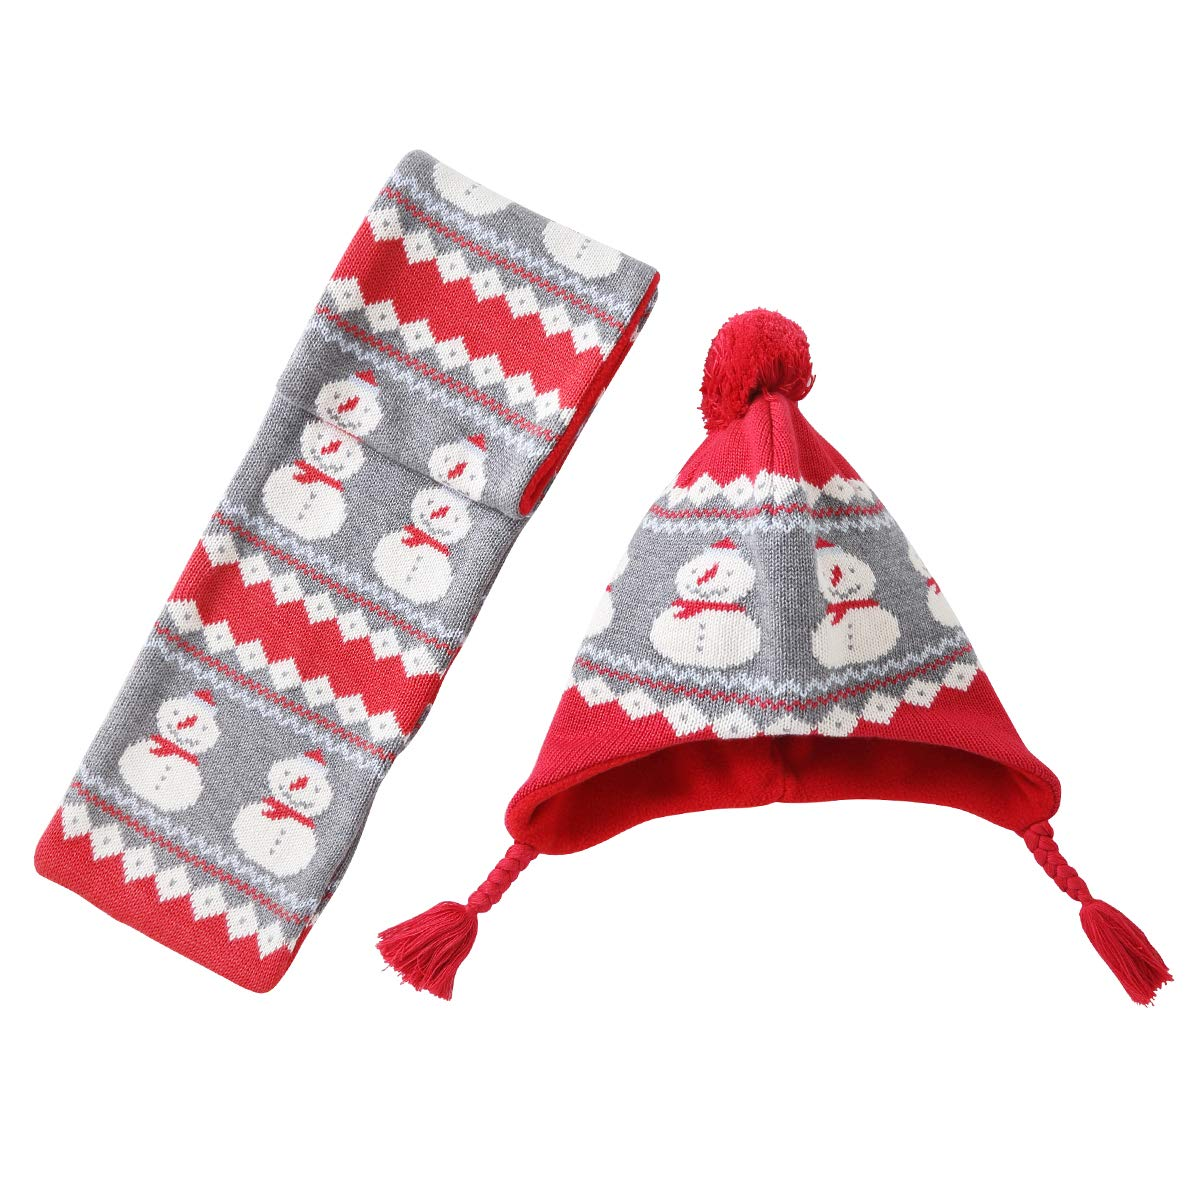 LAPLBEKE Kid Hats Warm Winter Fall Pom Pom Beanie Knitted Toddler Cap Baby Snowman Scarf Hat Sets